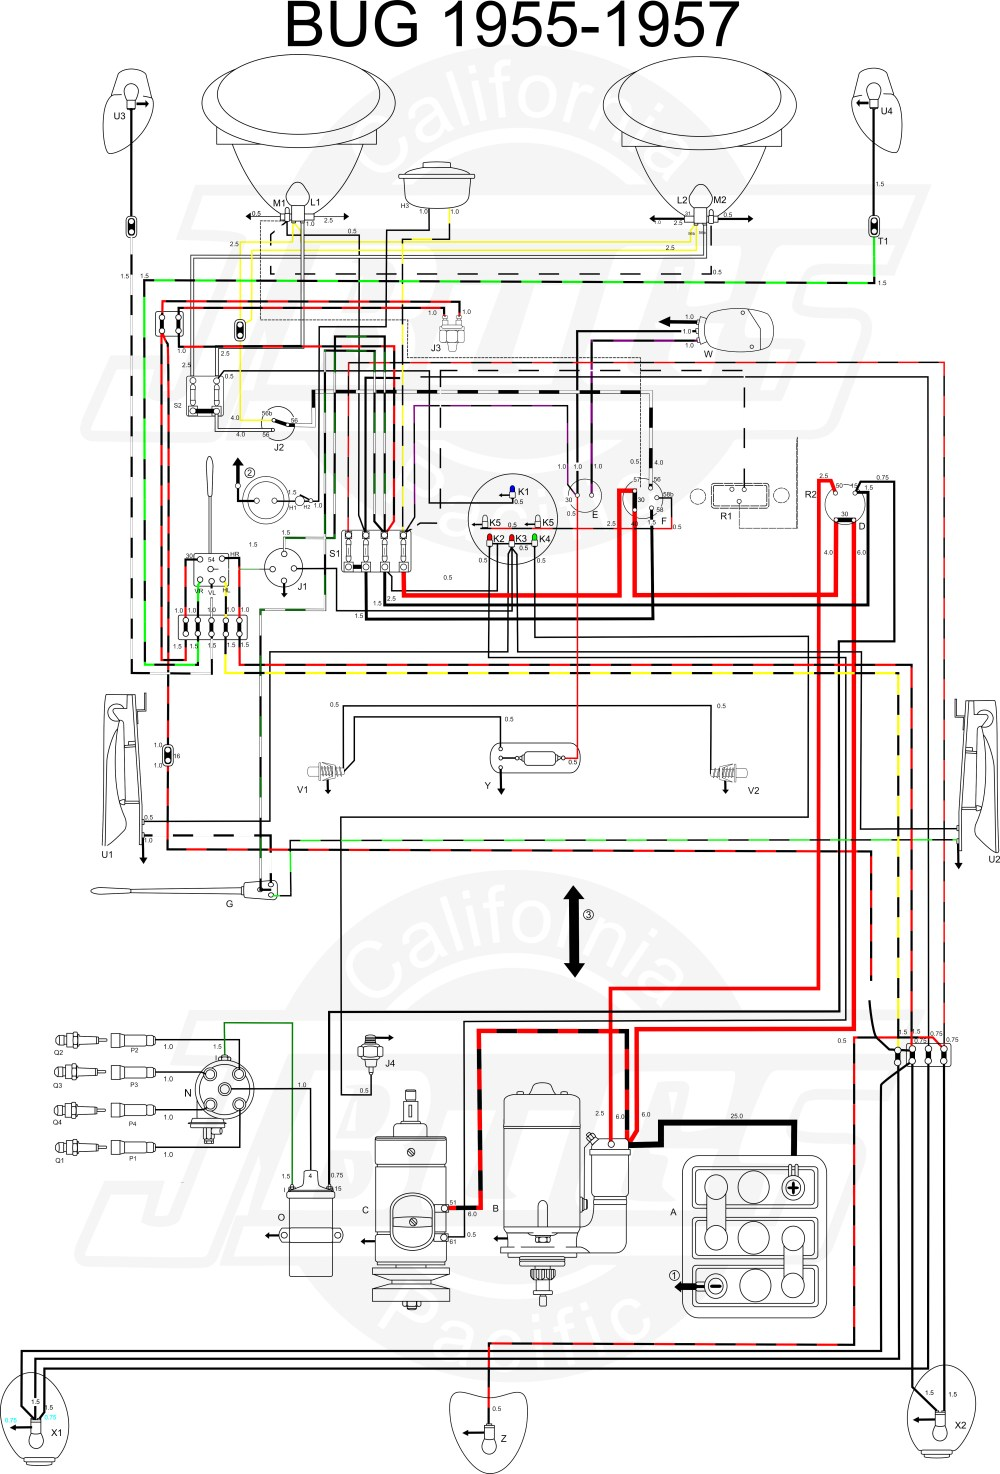 medium resolution of air cooled vw wiring diagram wiring diagram pass vw air cooled coil wiring diagram air cooled vw wiring diagram